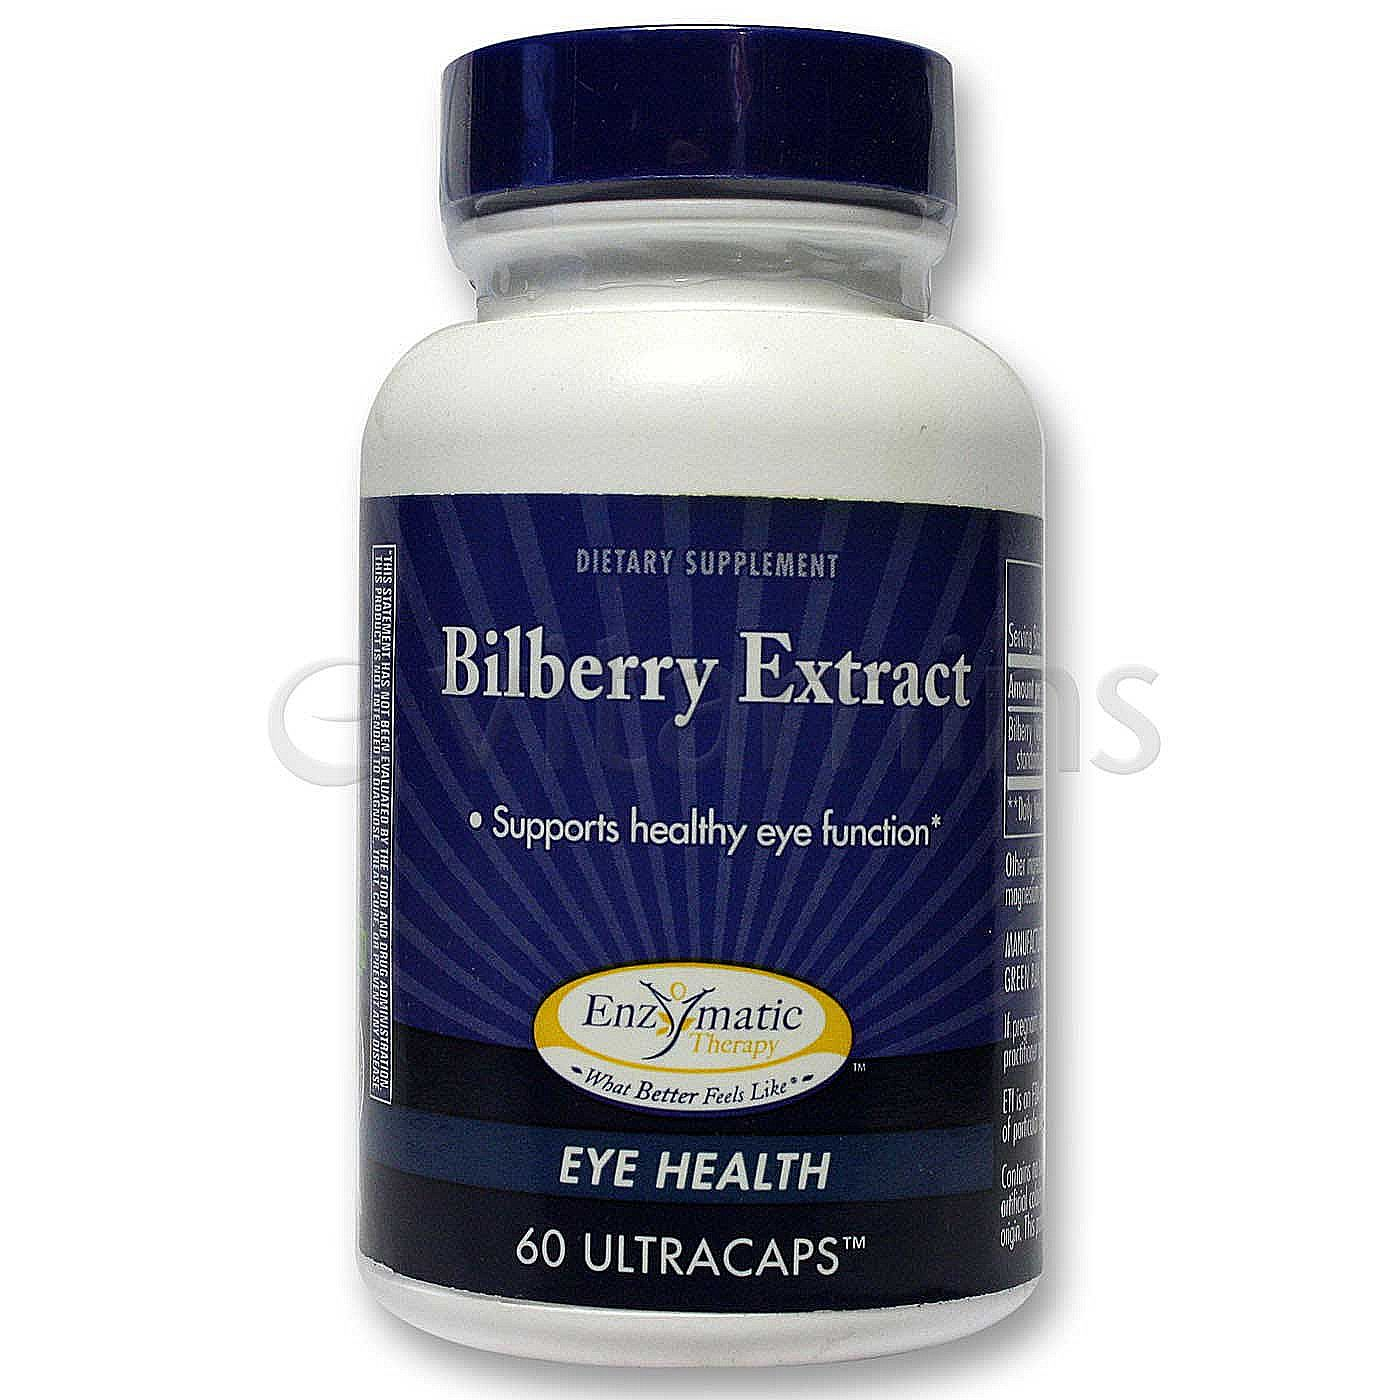 What is bilberry extract